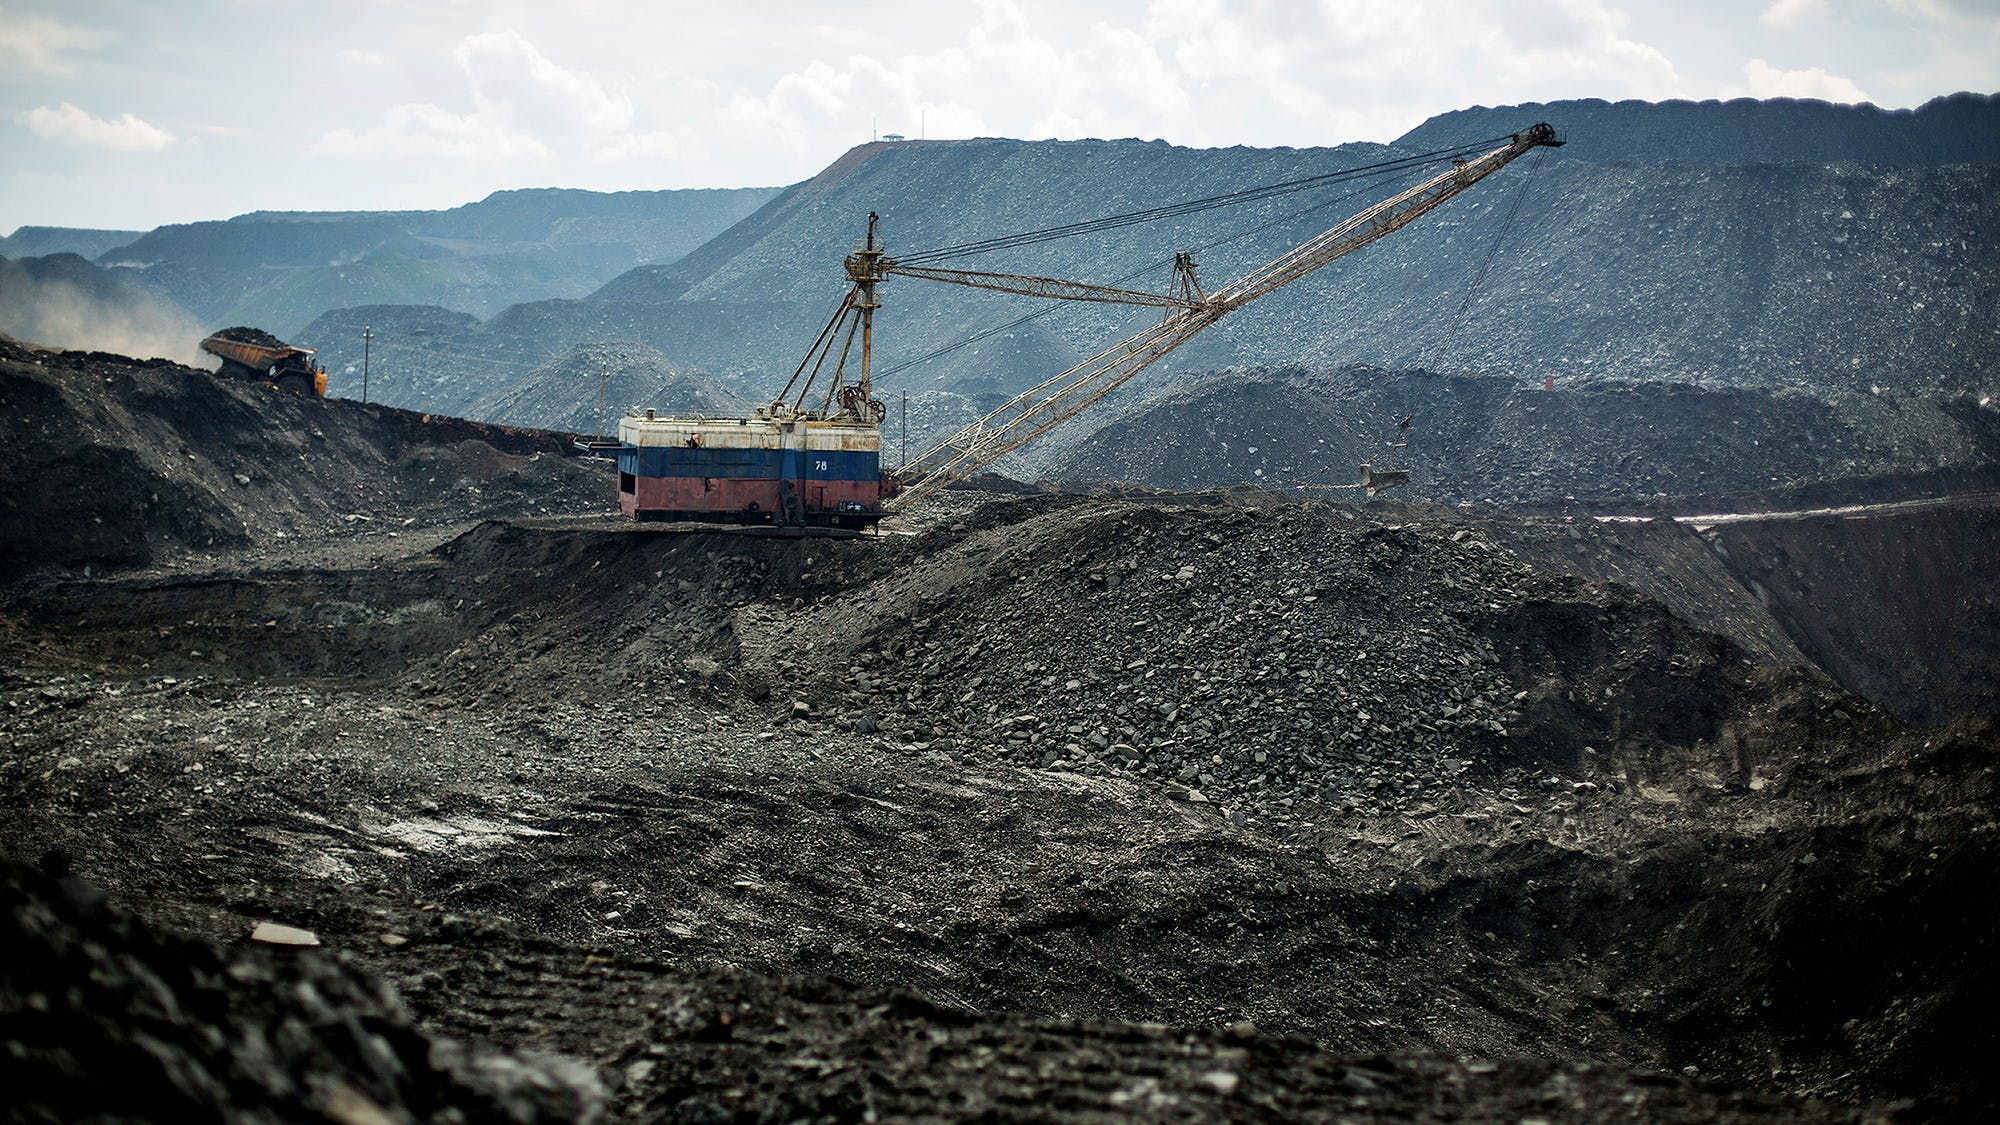 A coal mine stretches into the distance like an open wound in the Earth.